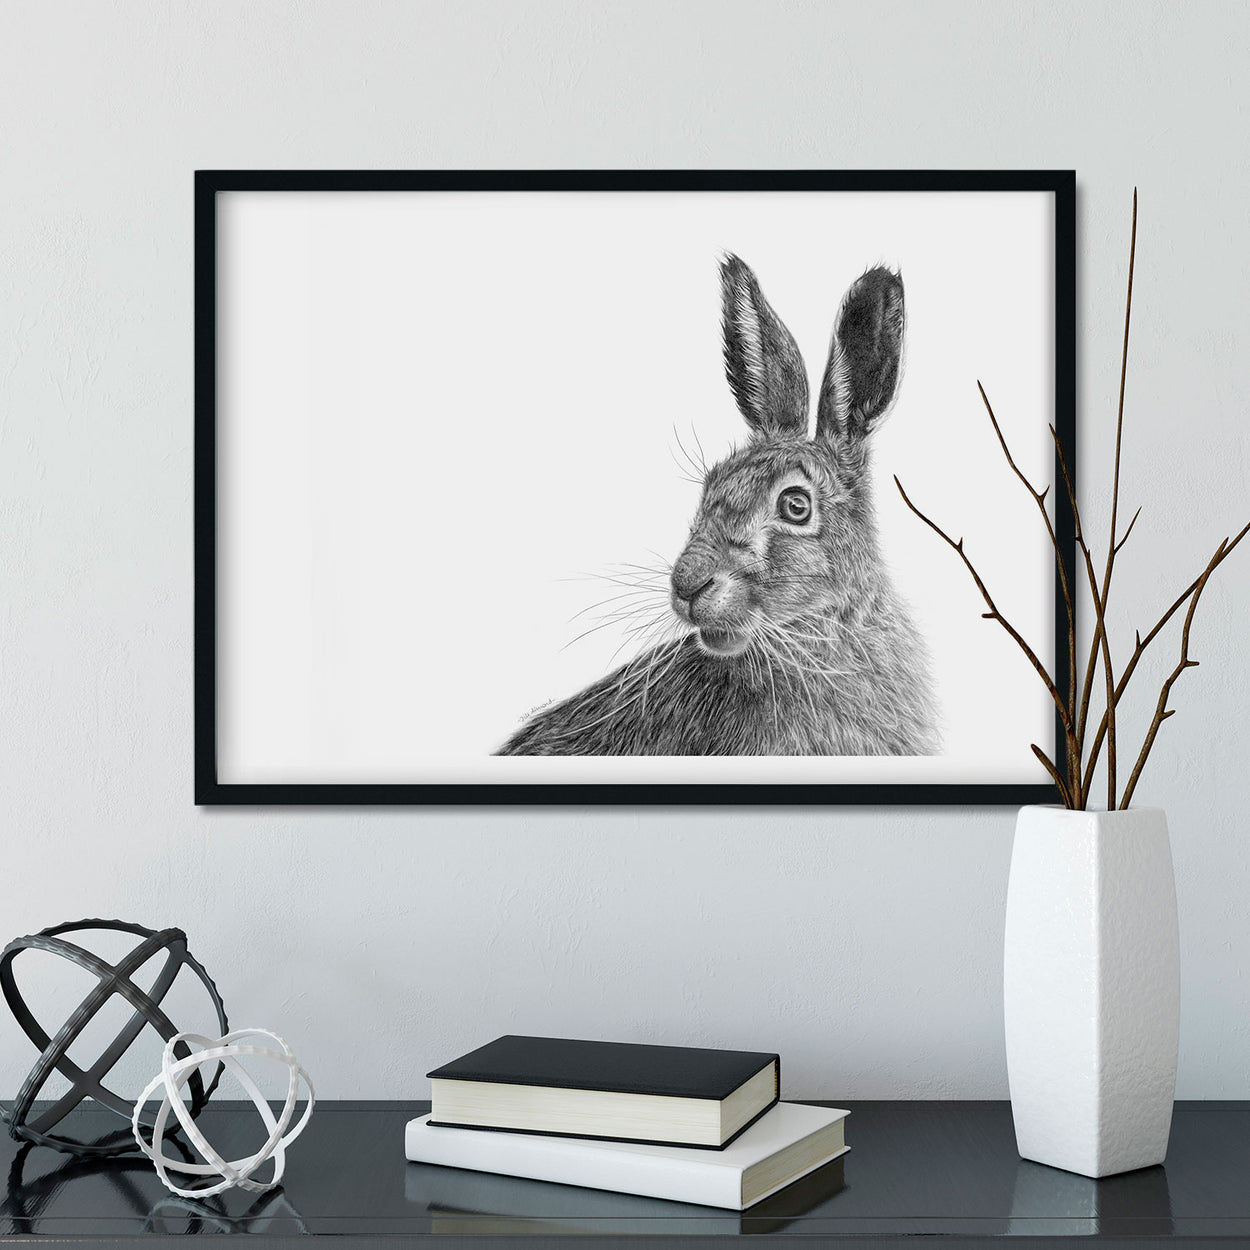 March Hare Framed Wall Art - The Thriving Wild